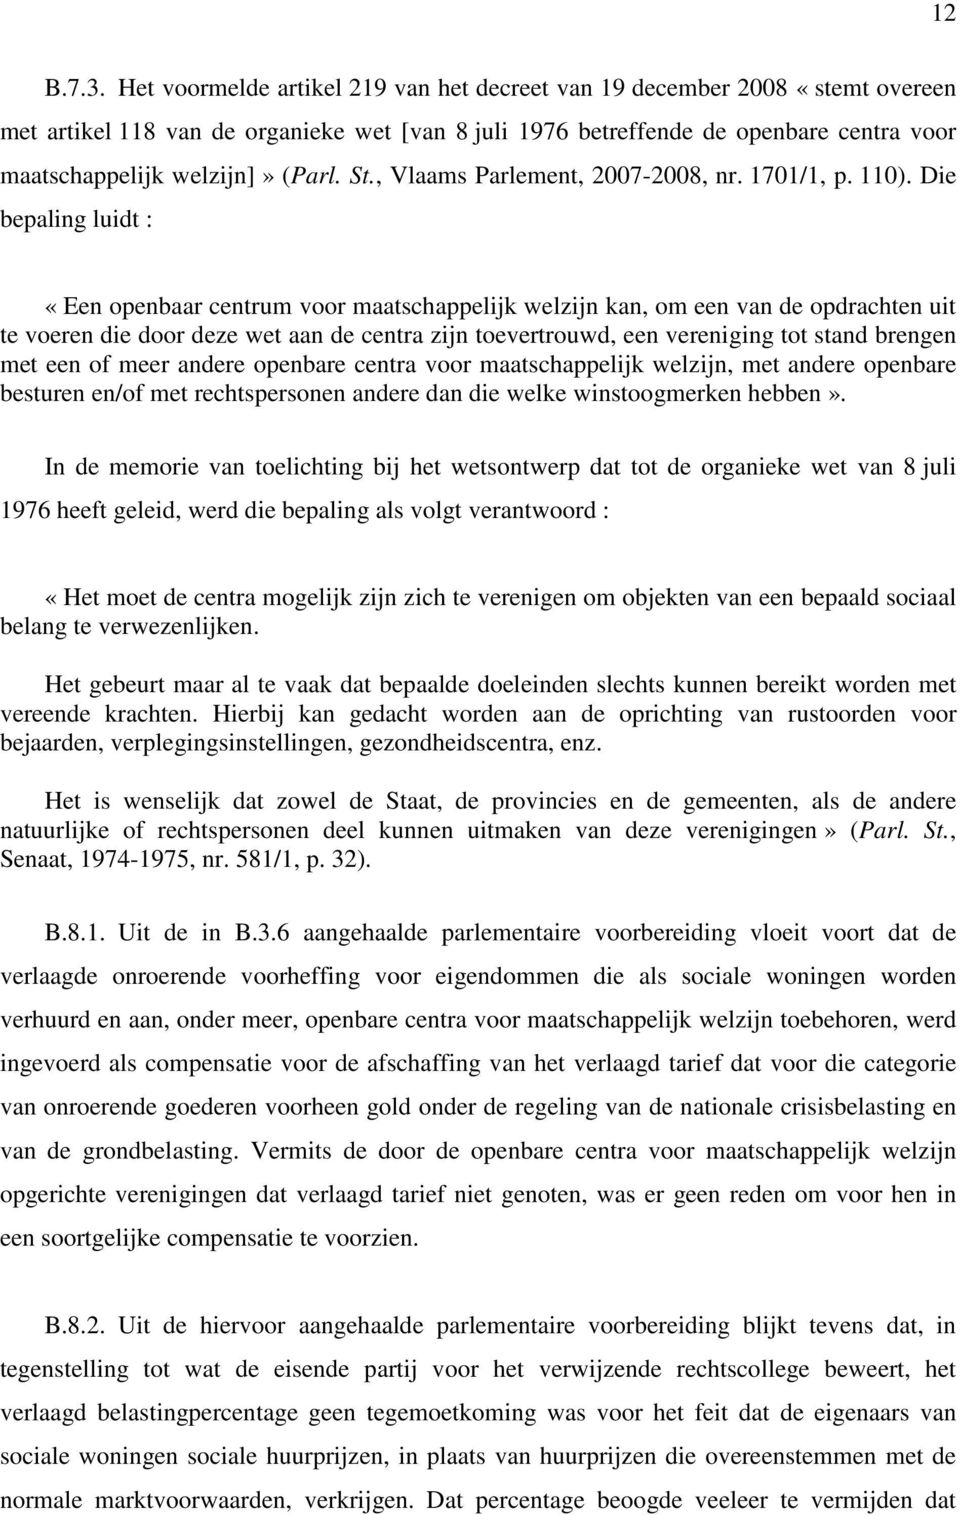 St., Vlaams Parlement, 2007-2008, nr. 1701/1, p. 110).